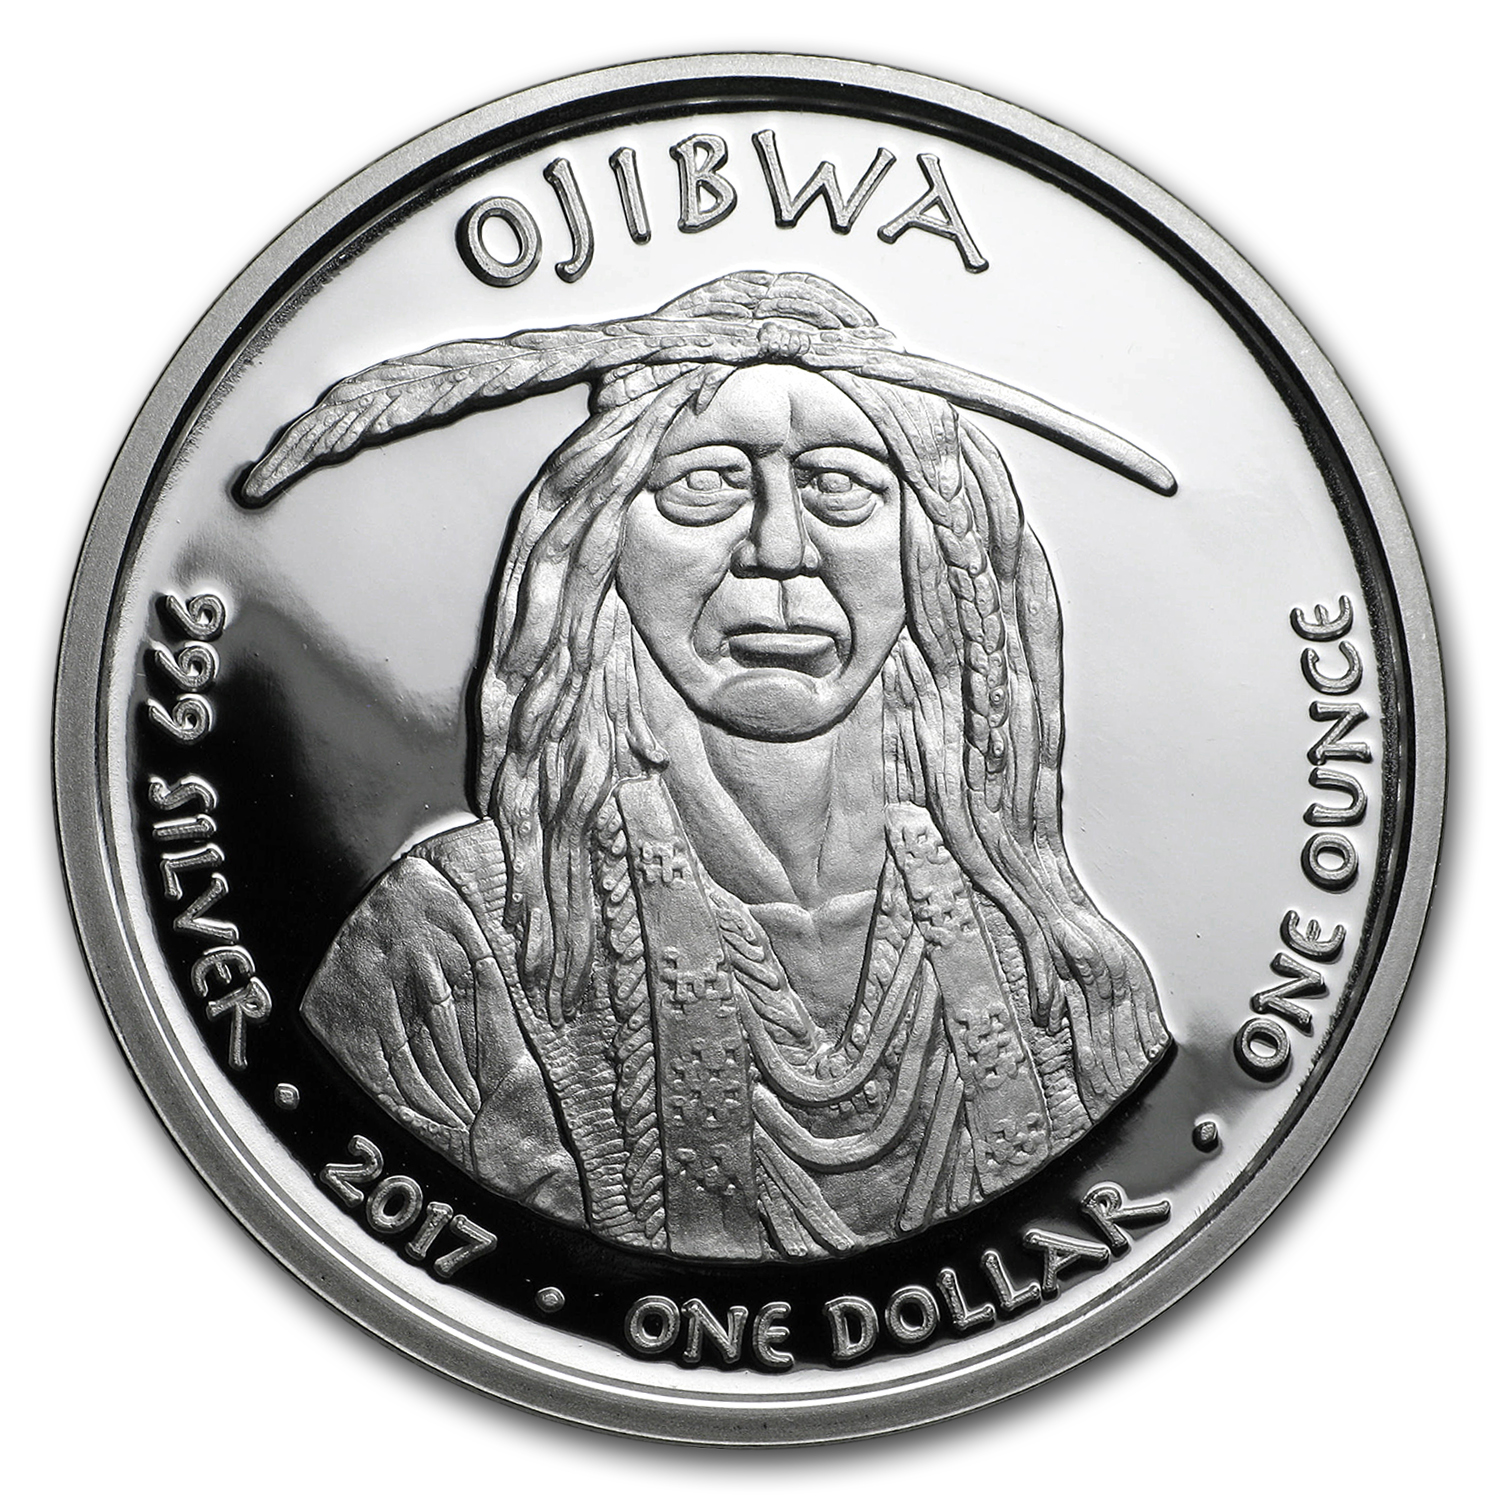 2017 1 oz Silver Proof State Dollars Ojibwa Michigan Swan